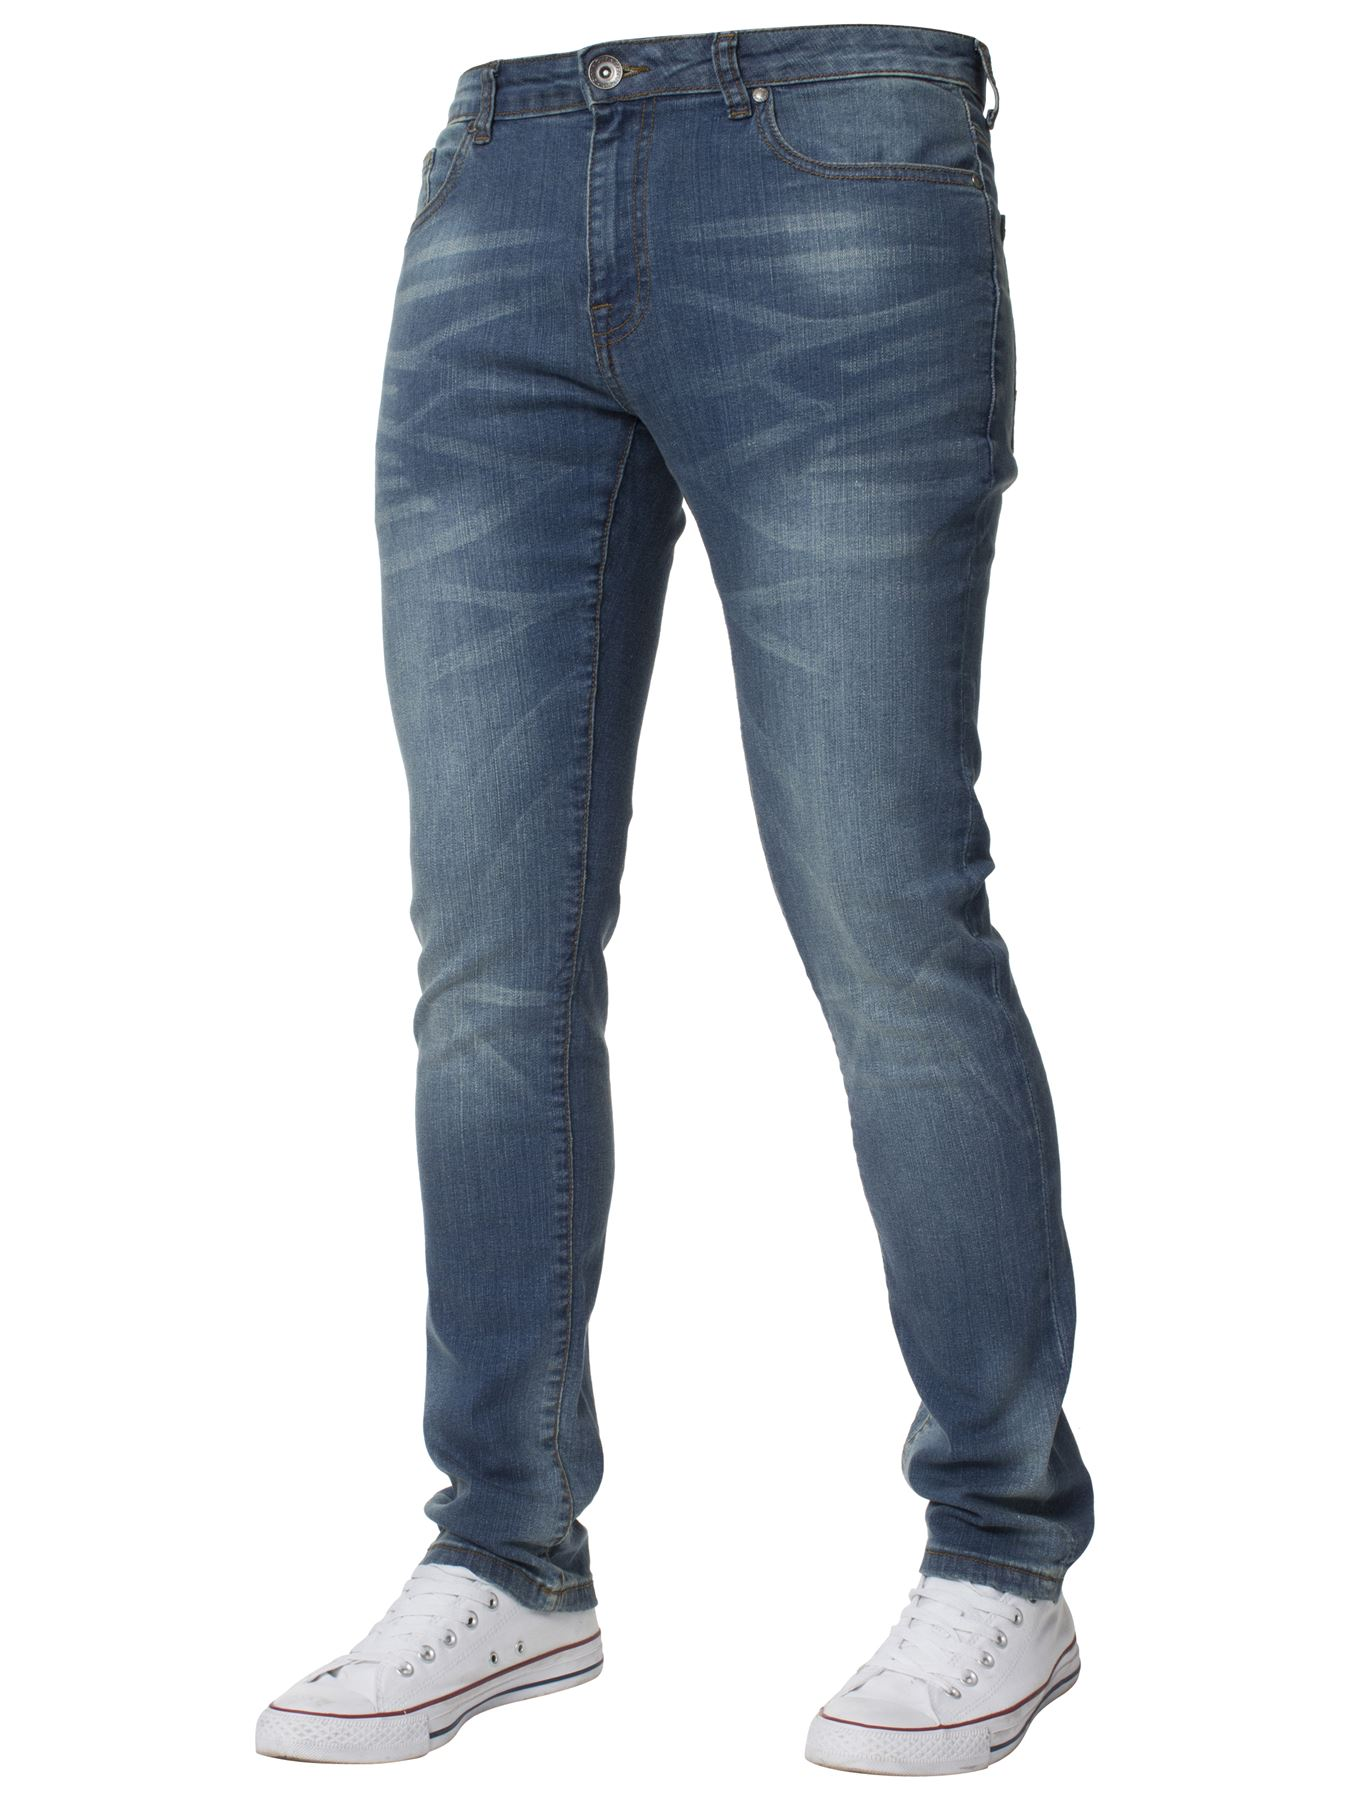 Mens-Skinny-Stretch-Jeans-Slim-Fit-Flex-Denim-Trousers-Pants-King-Sizes-by-Kruze thumbnail 21